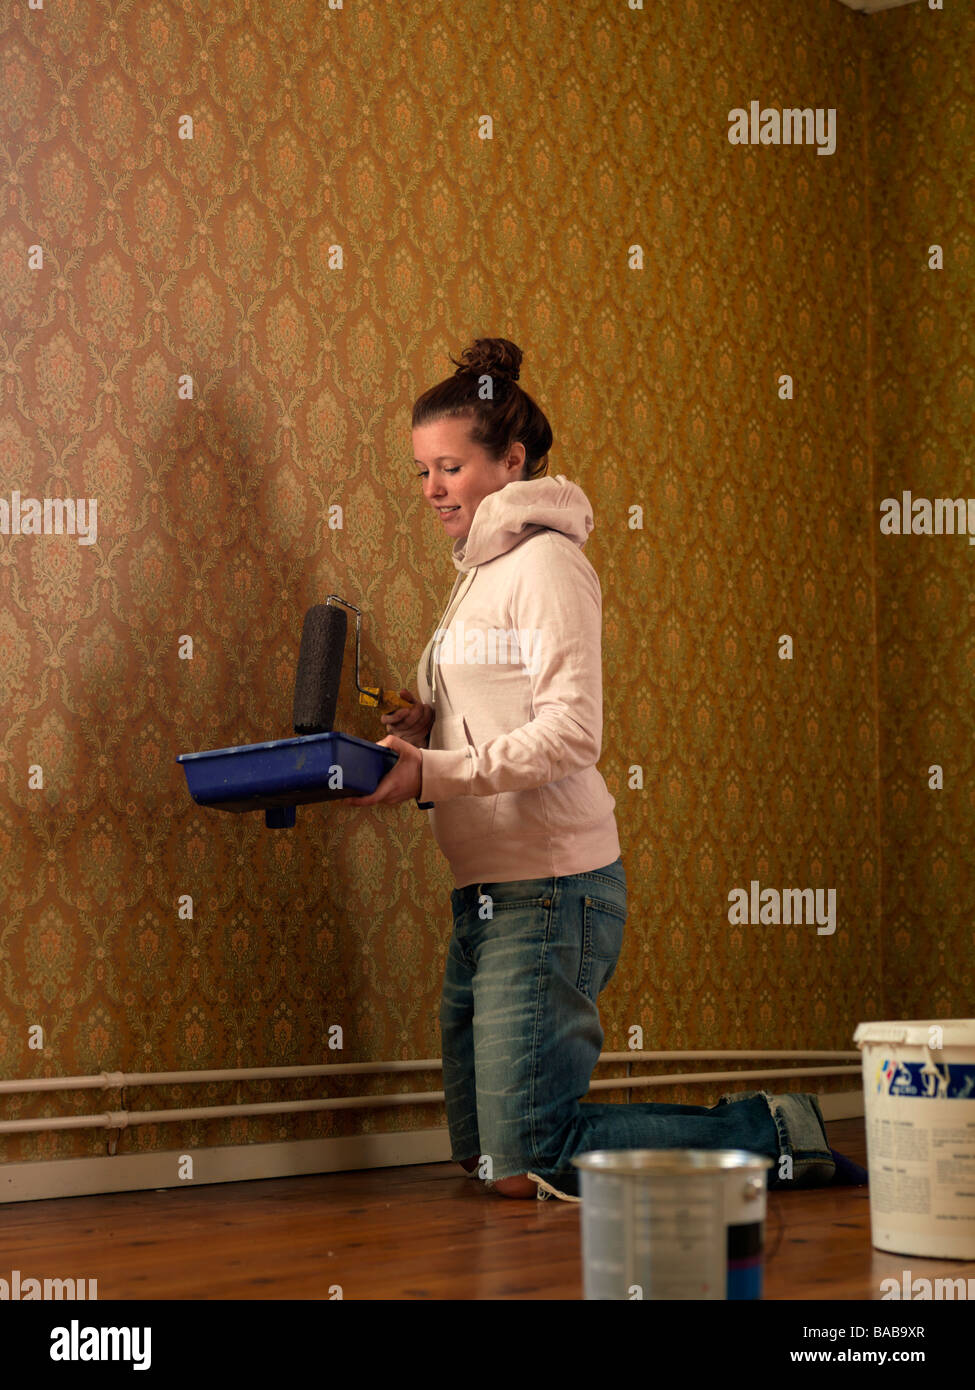 A young woman renovating a room Sweden. - Stock Image